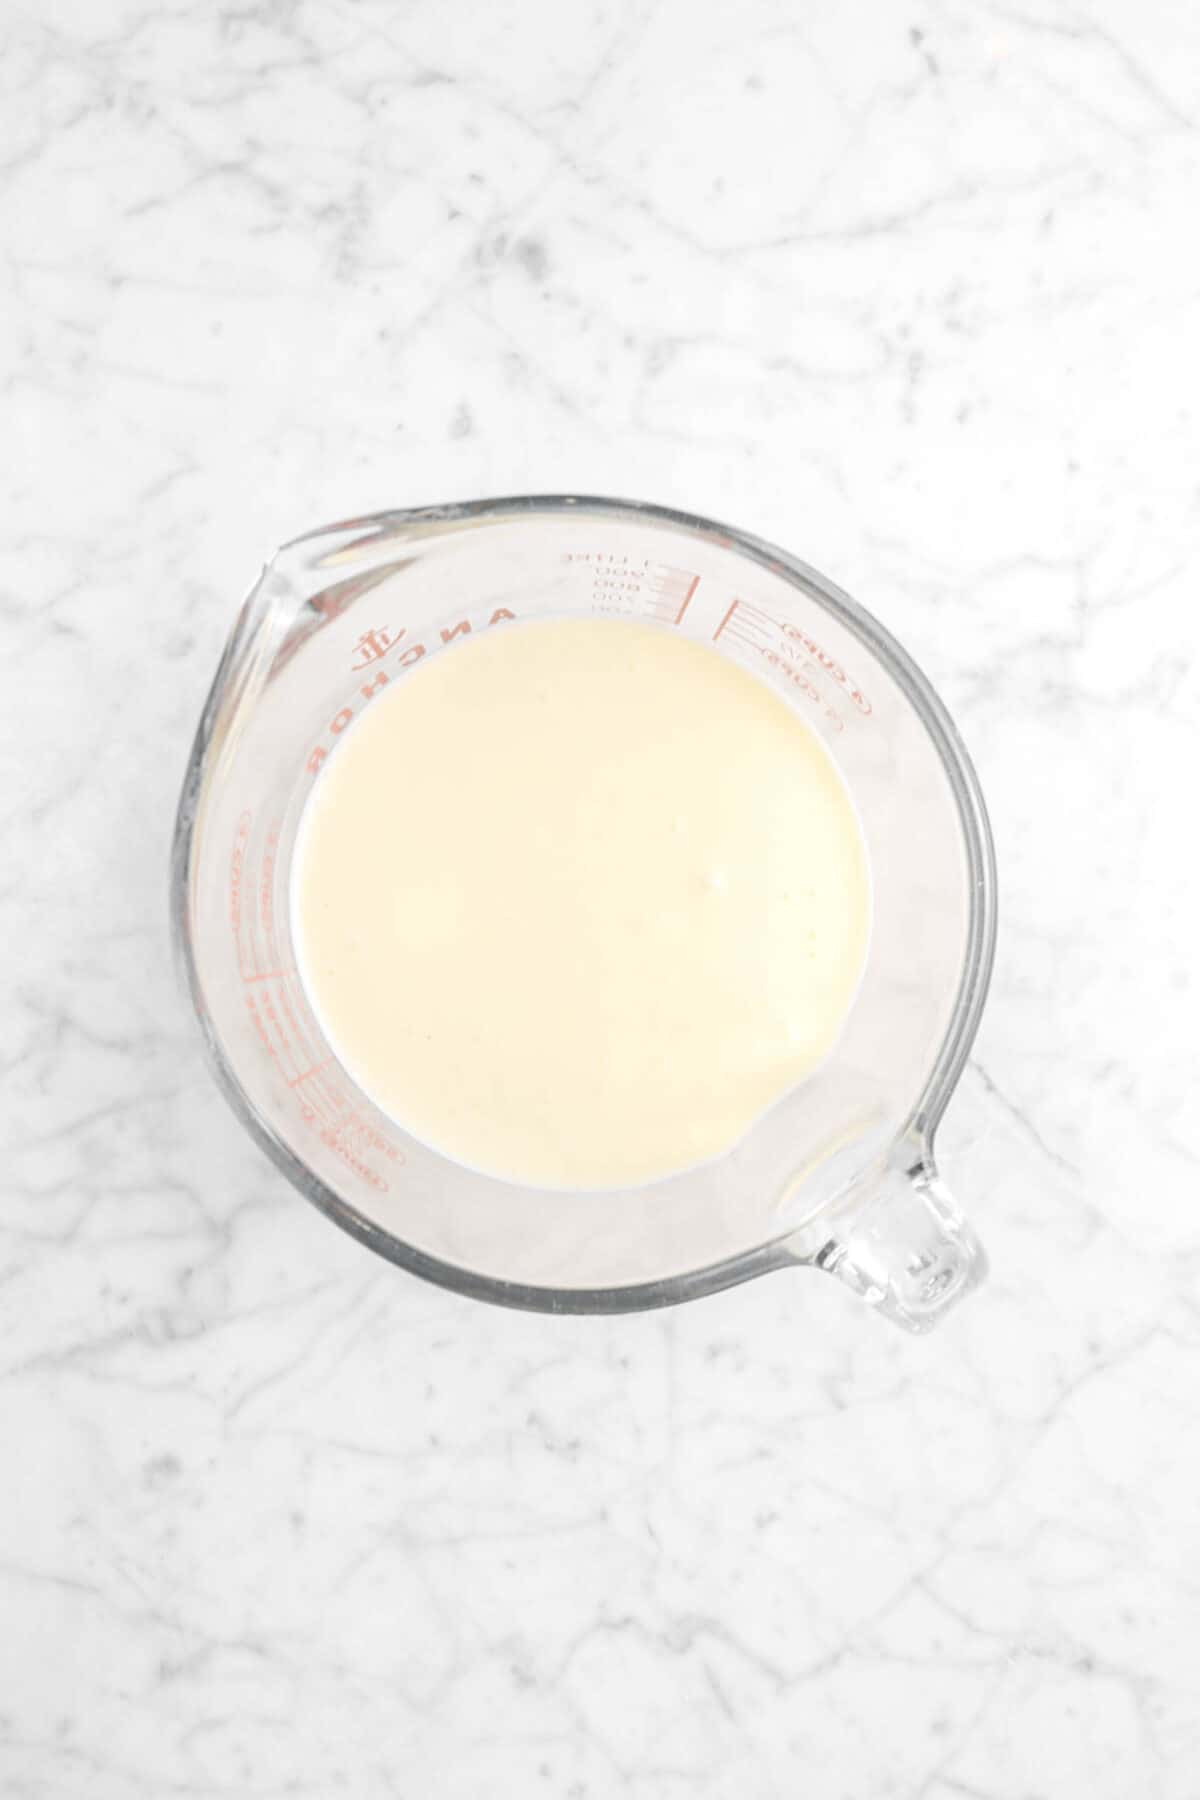 cheesecake batter in a measuring cup